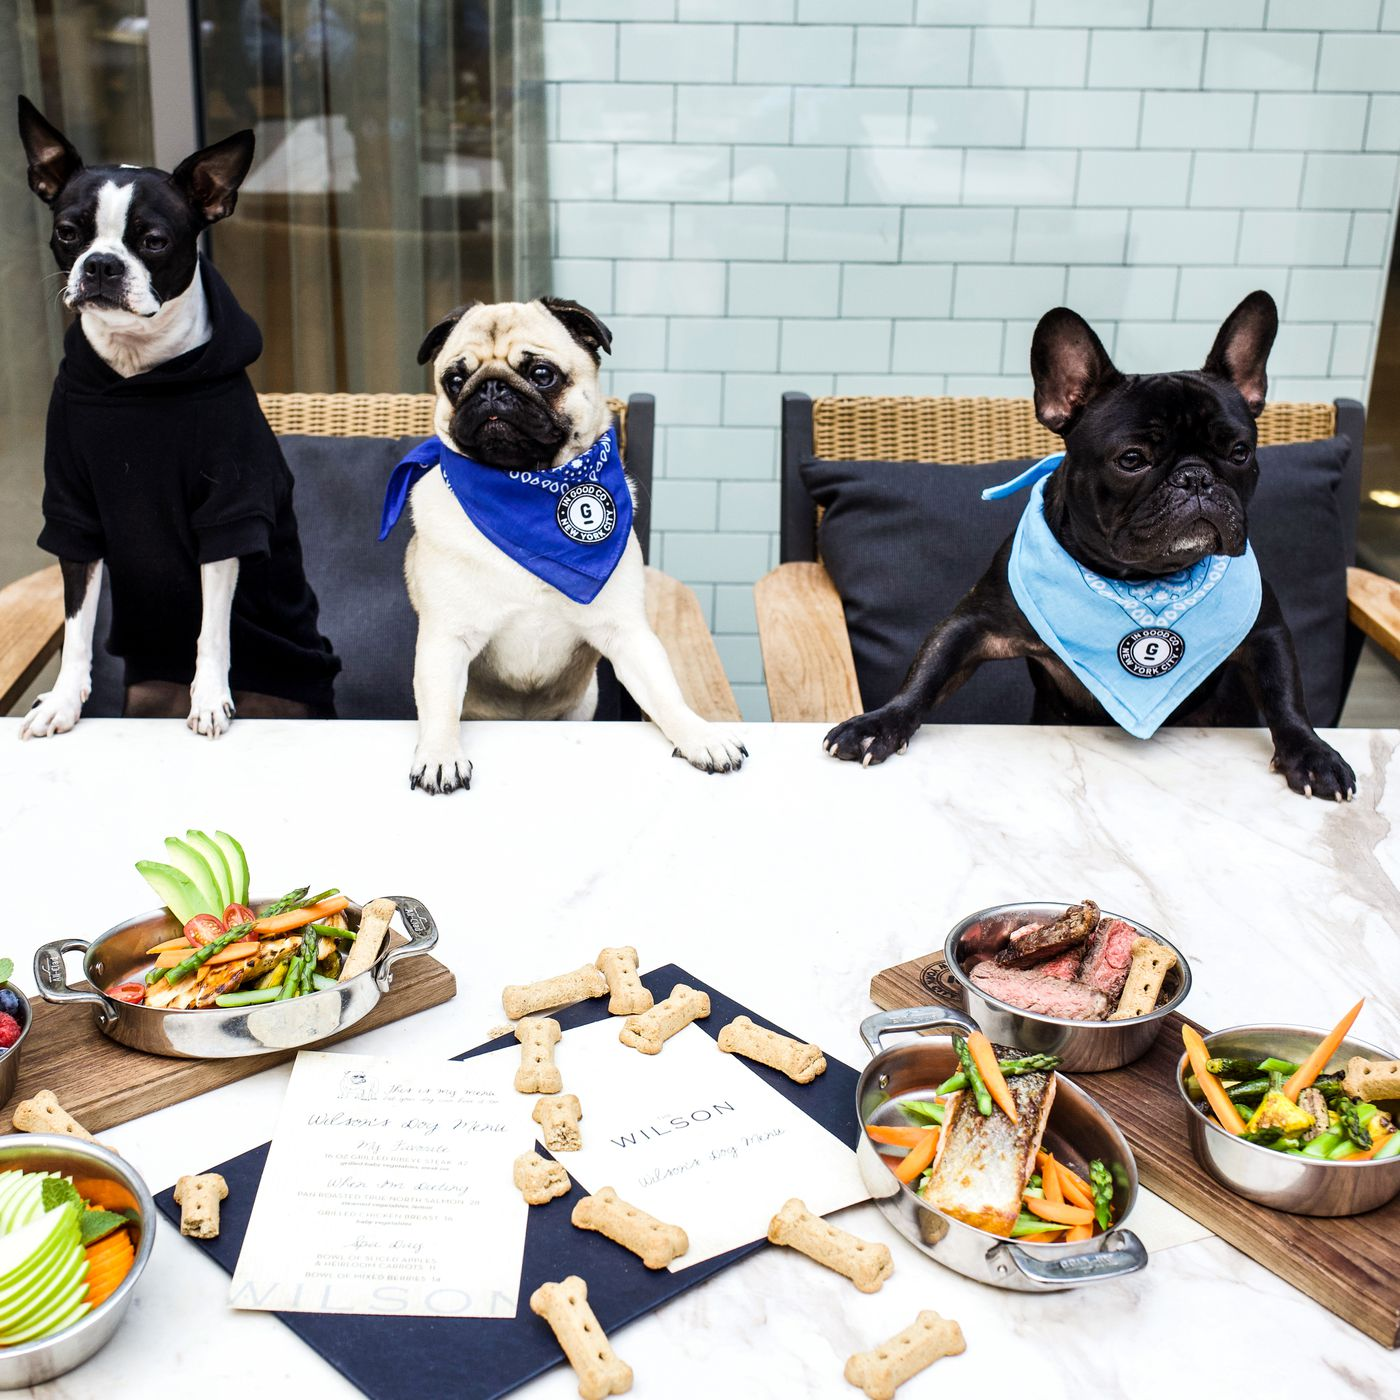 16 Top Dog-Friendly Restaurants and Bars in NYC - Eater NY Watch Dogs Map Coffee Shops on fishing map, ice cream shop map, coffee facebook, bank map, parking map, church map, restaurant map, cafeteria map, playground map, hotel map, apartment complex map, beach map, gas station map, tavern map, pizza map, shopping map, garden map, casino map, supermarket map,